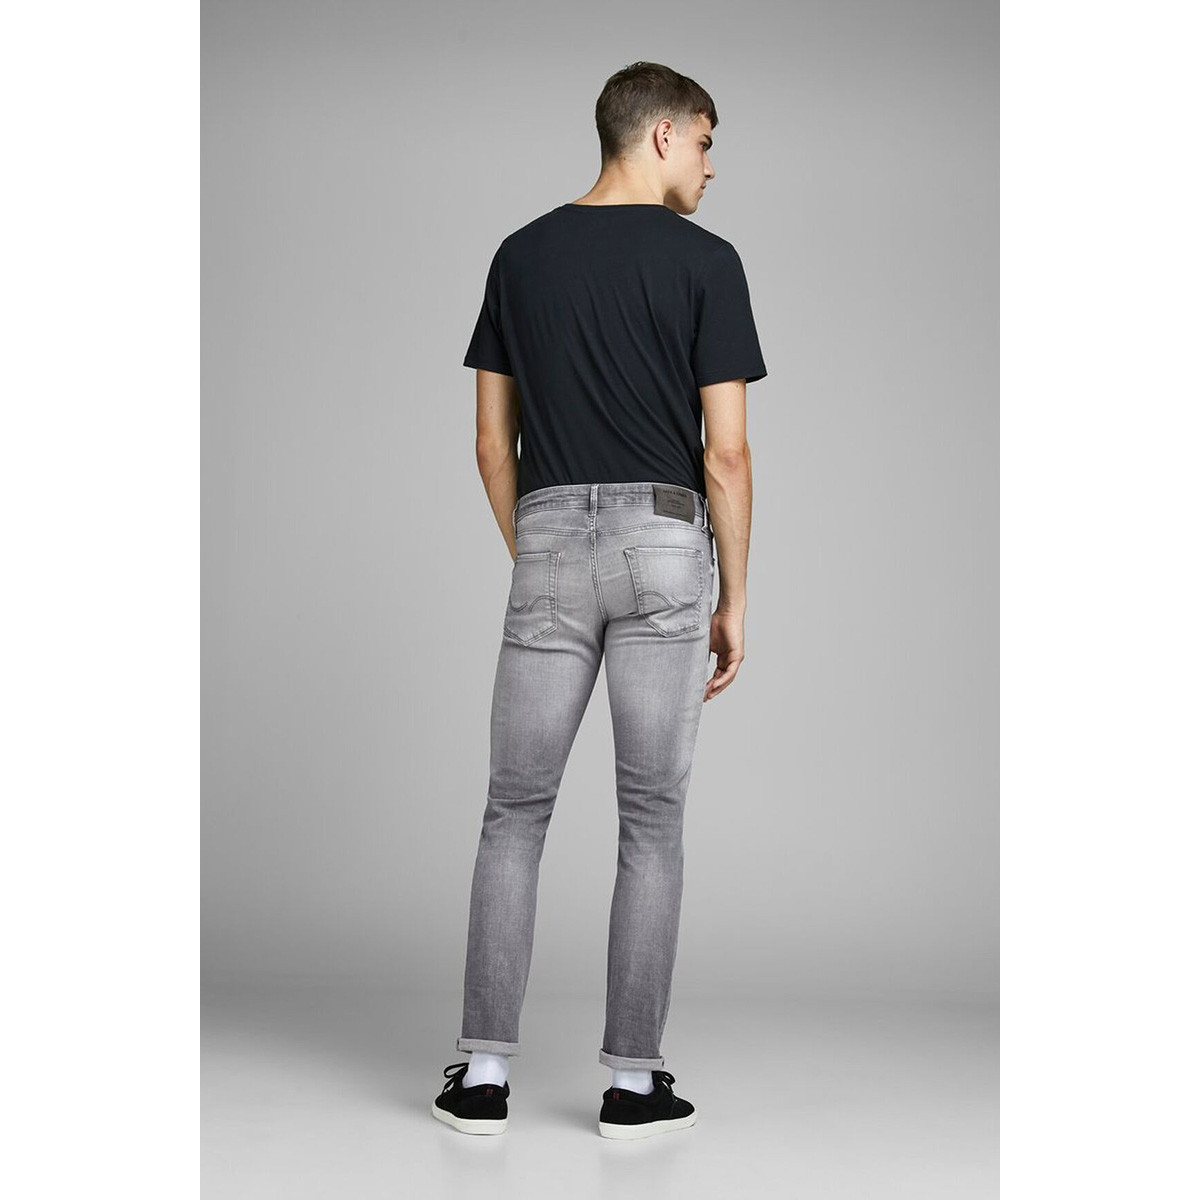 jjiglenn jjicon jj 257 50sps noos 12147024 jack & jones jeans grey denim